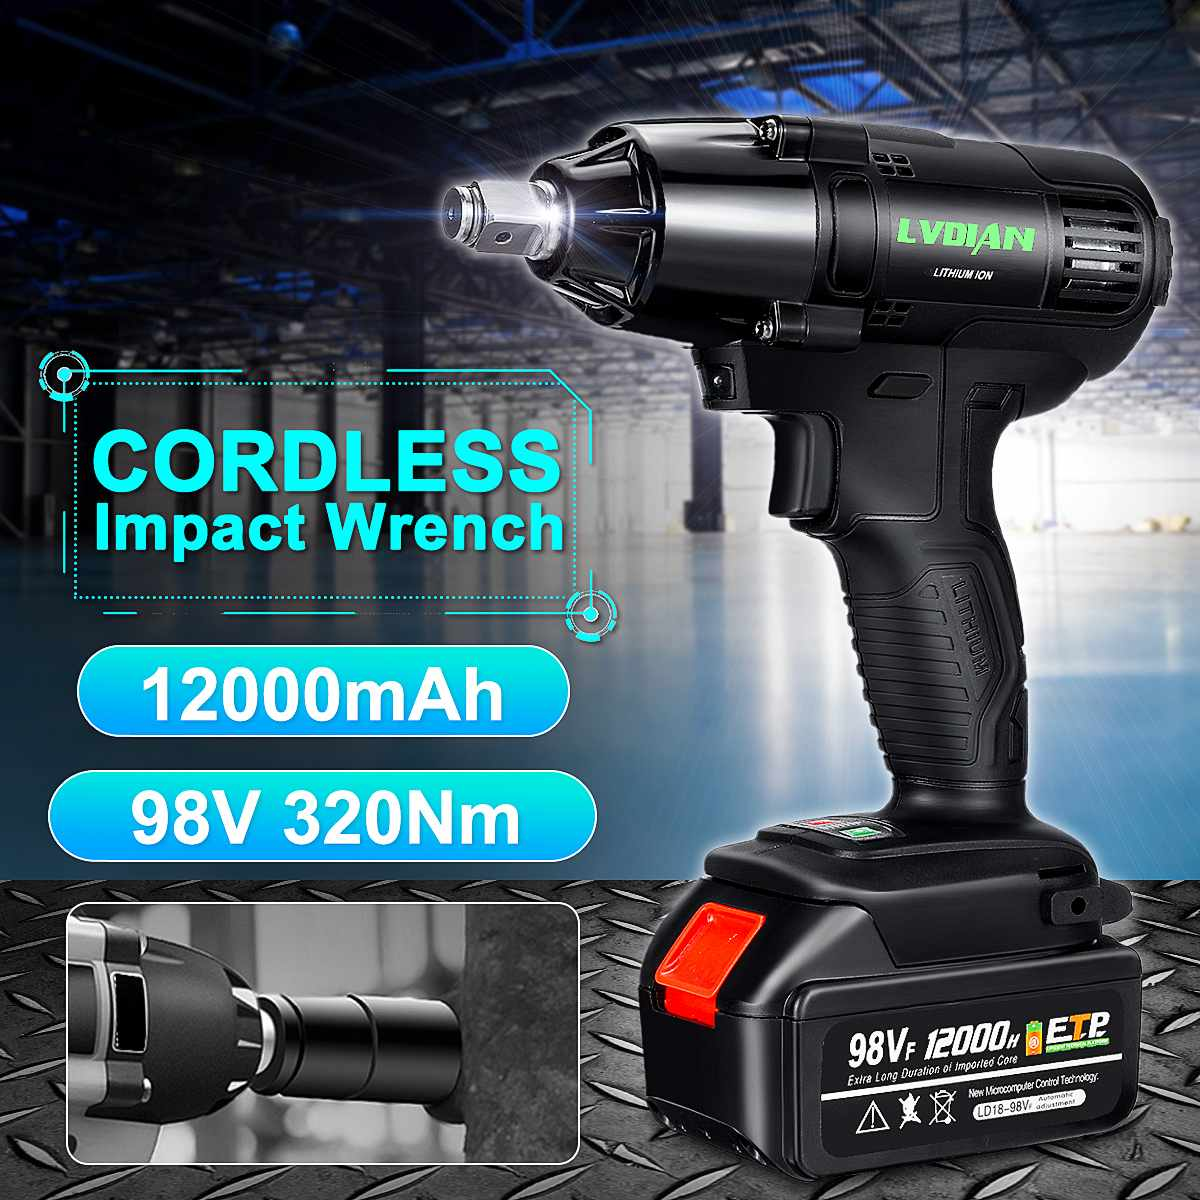 98VF 320N.M Cordless Electric Wrench Impact Socket Wrench 12000mAh Li Battery Hand Drill Screwdriver Installation Power Tools